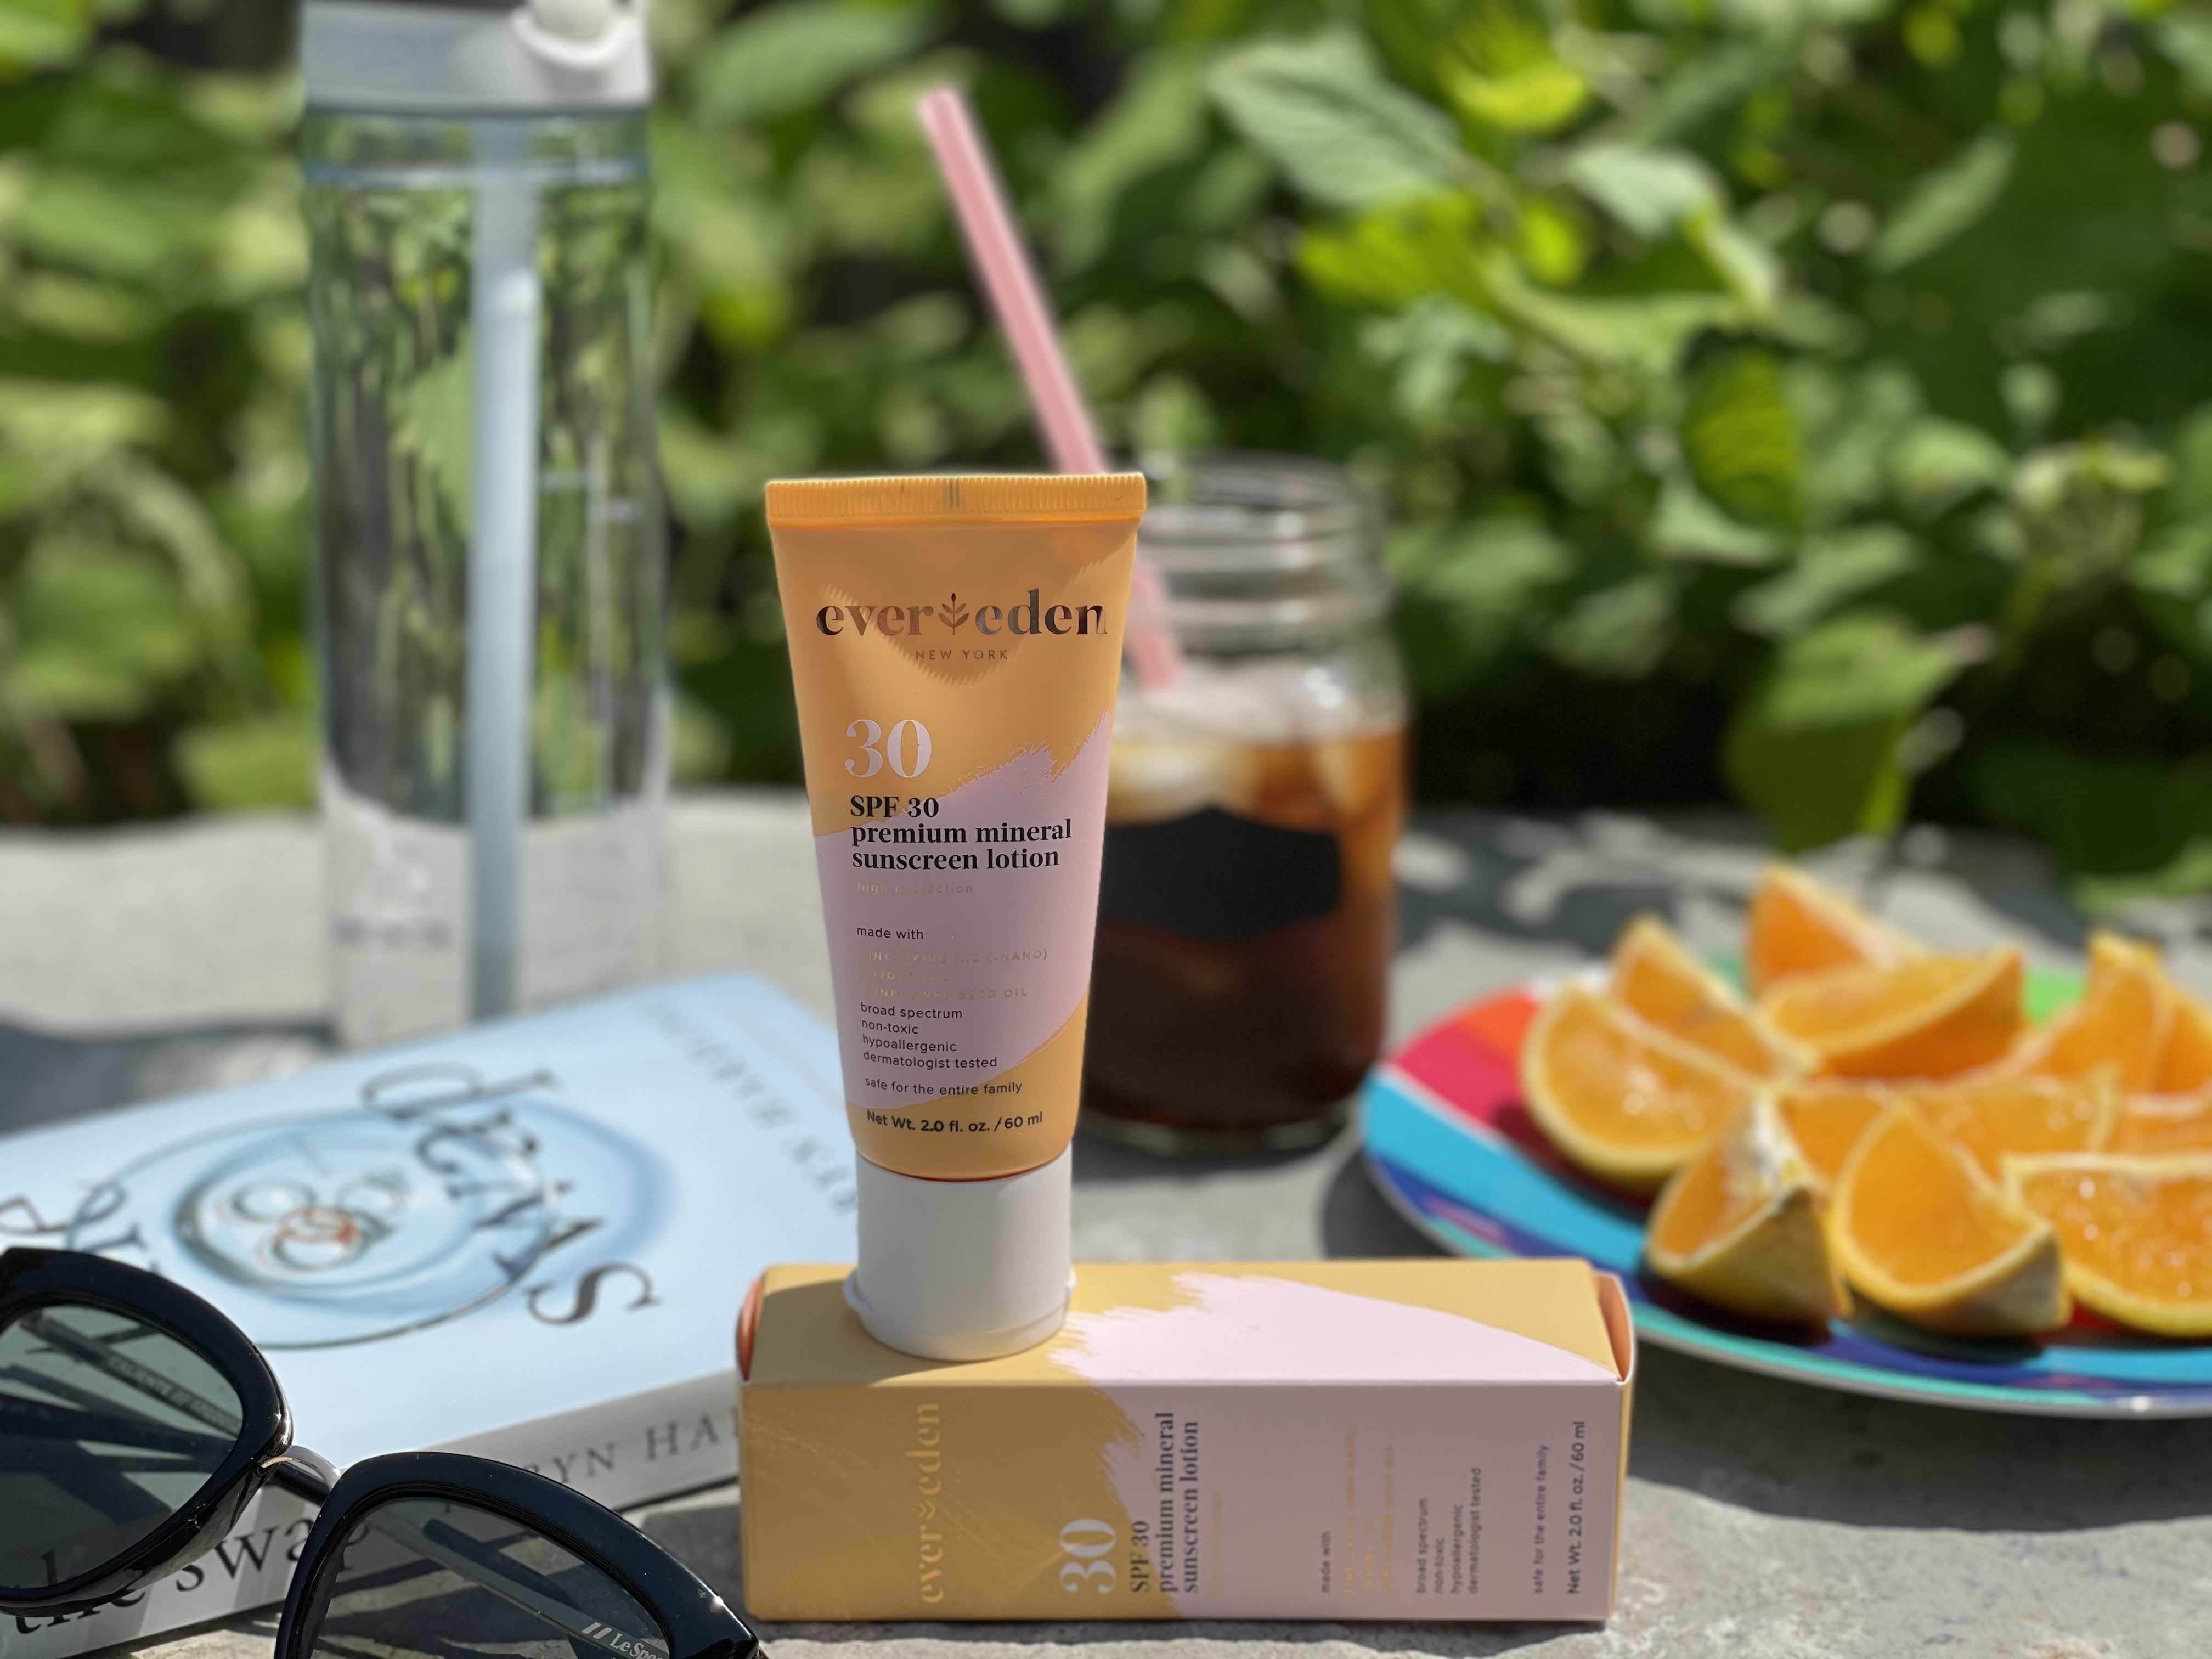 Safest sunscreen for babies and kids